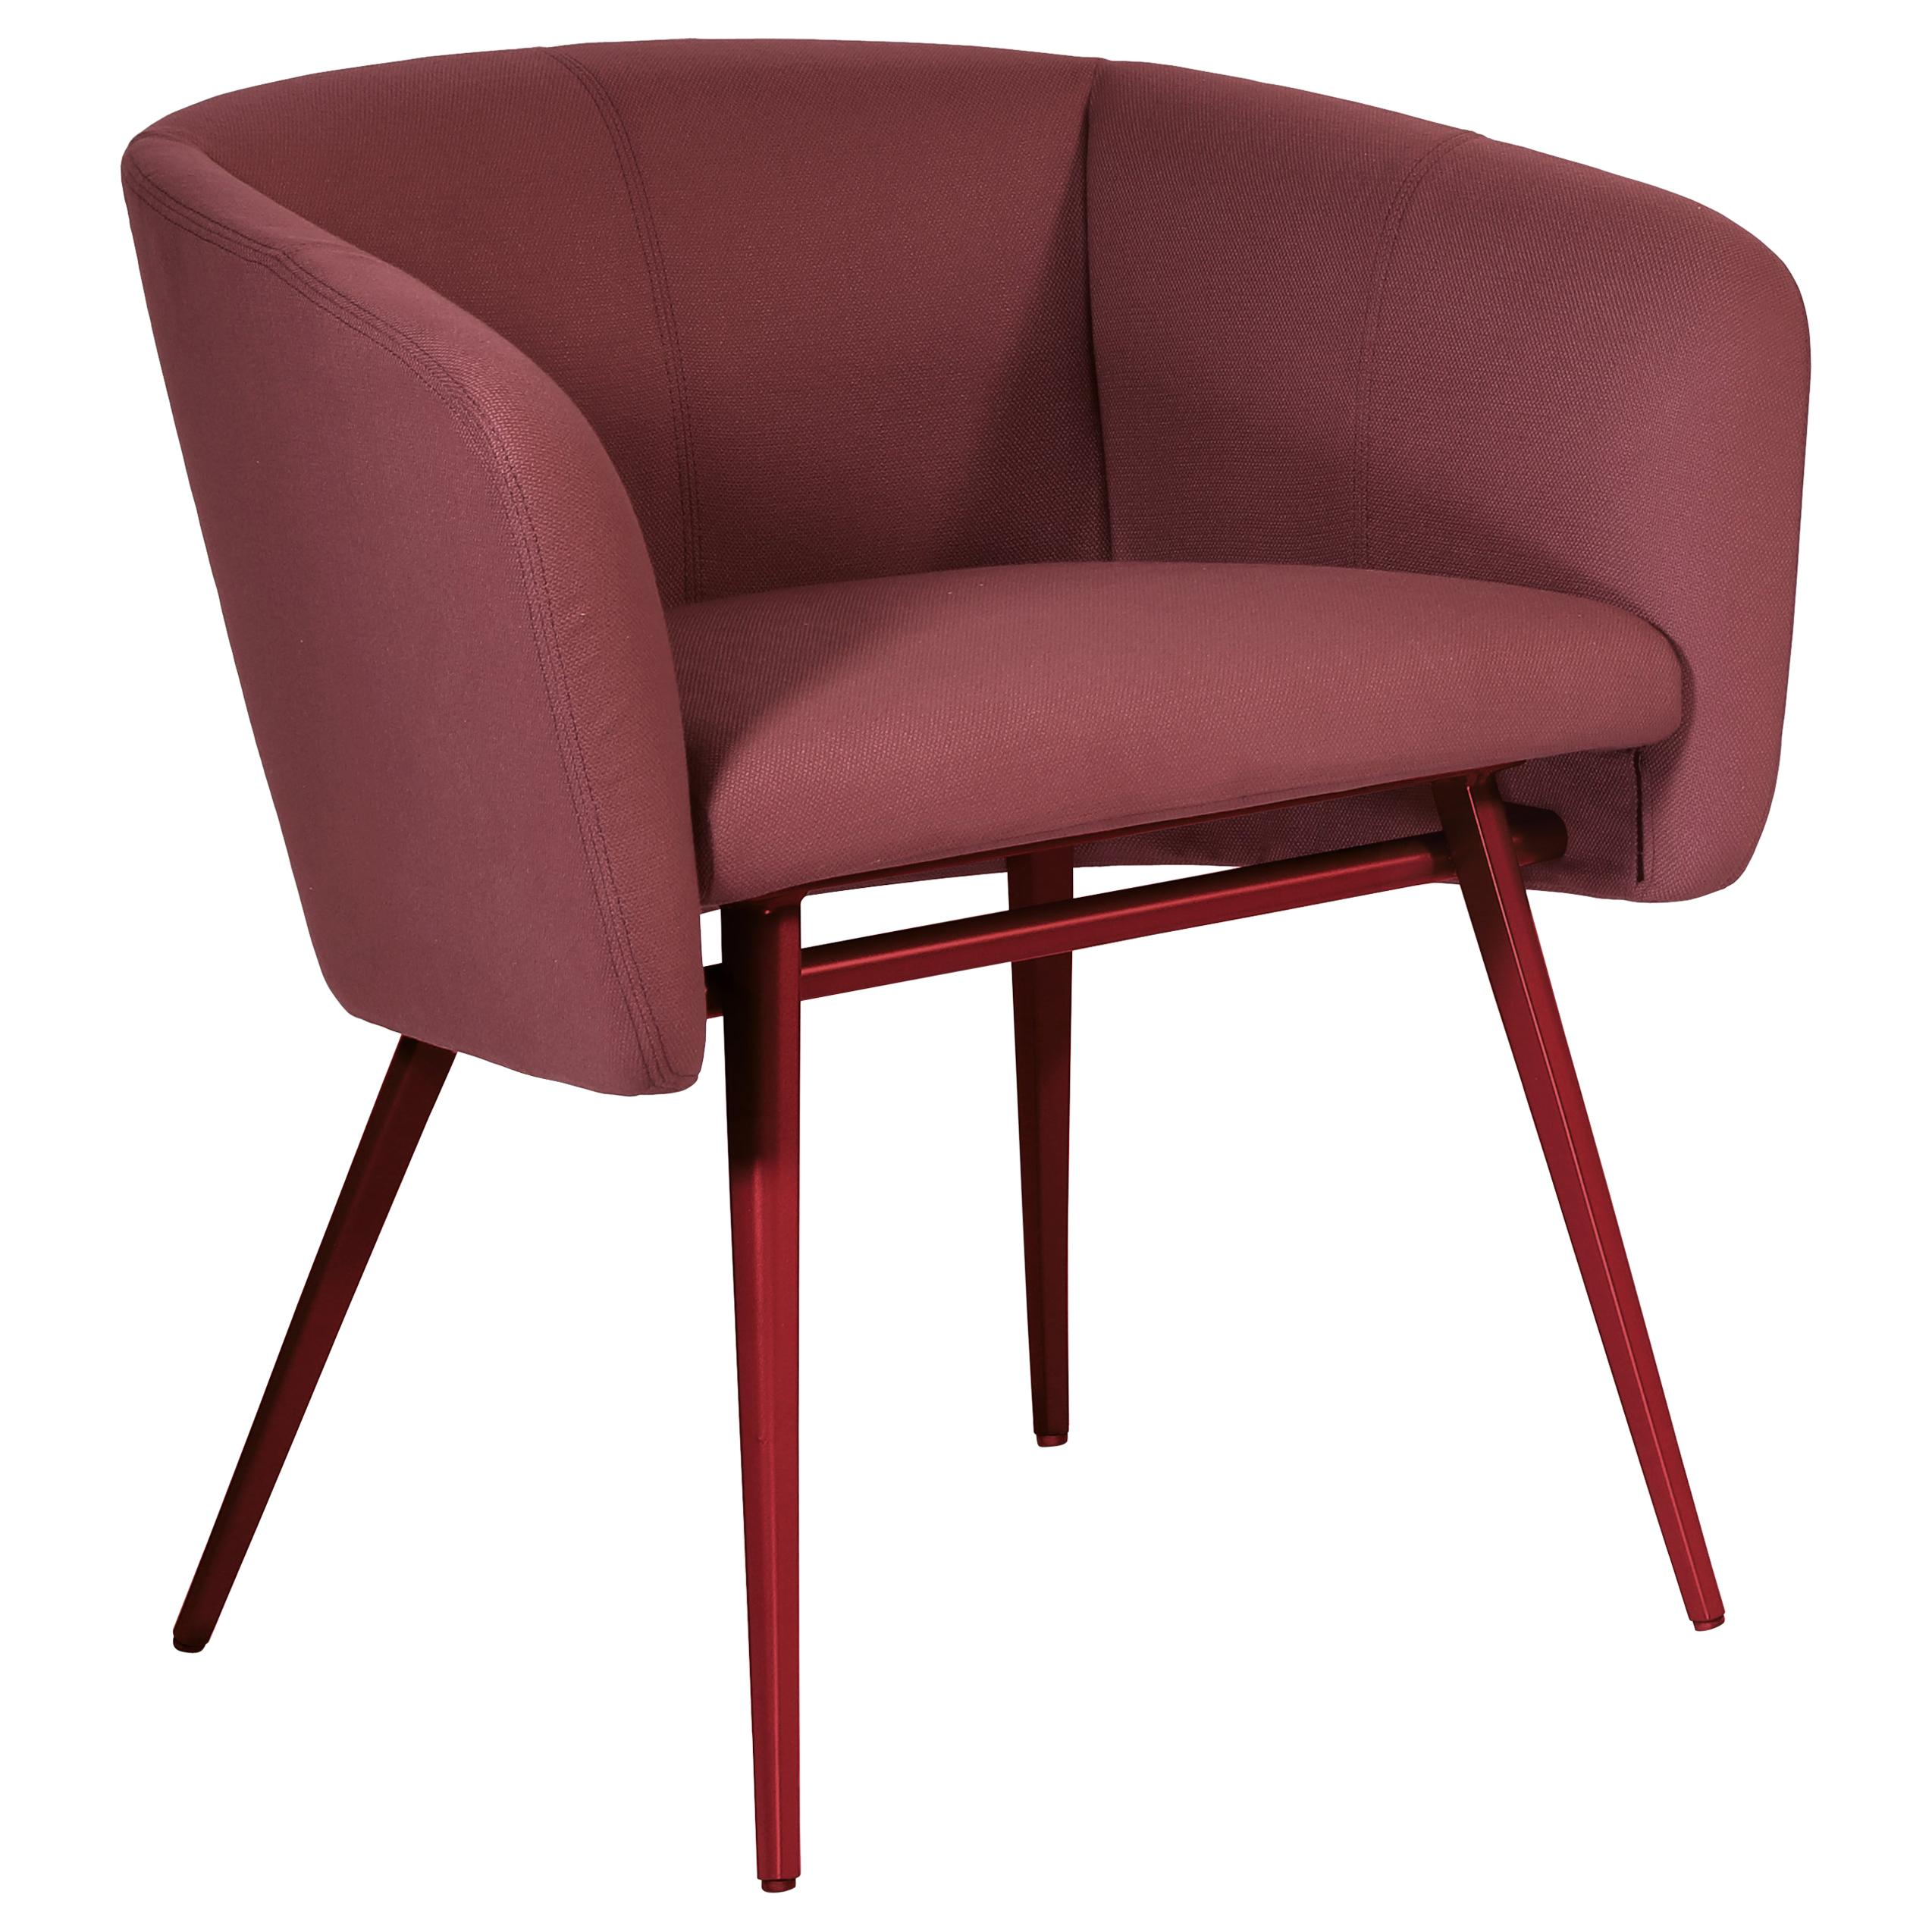 Armchair Art, Balu' Metal Frame Varnish and Fabric Red by Emilio Nanni